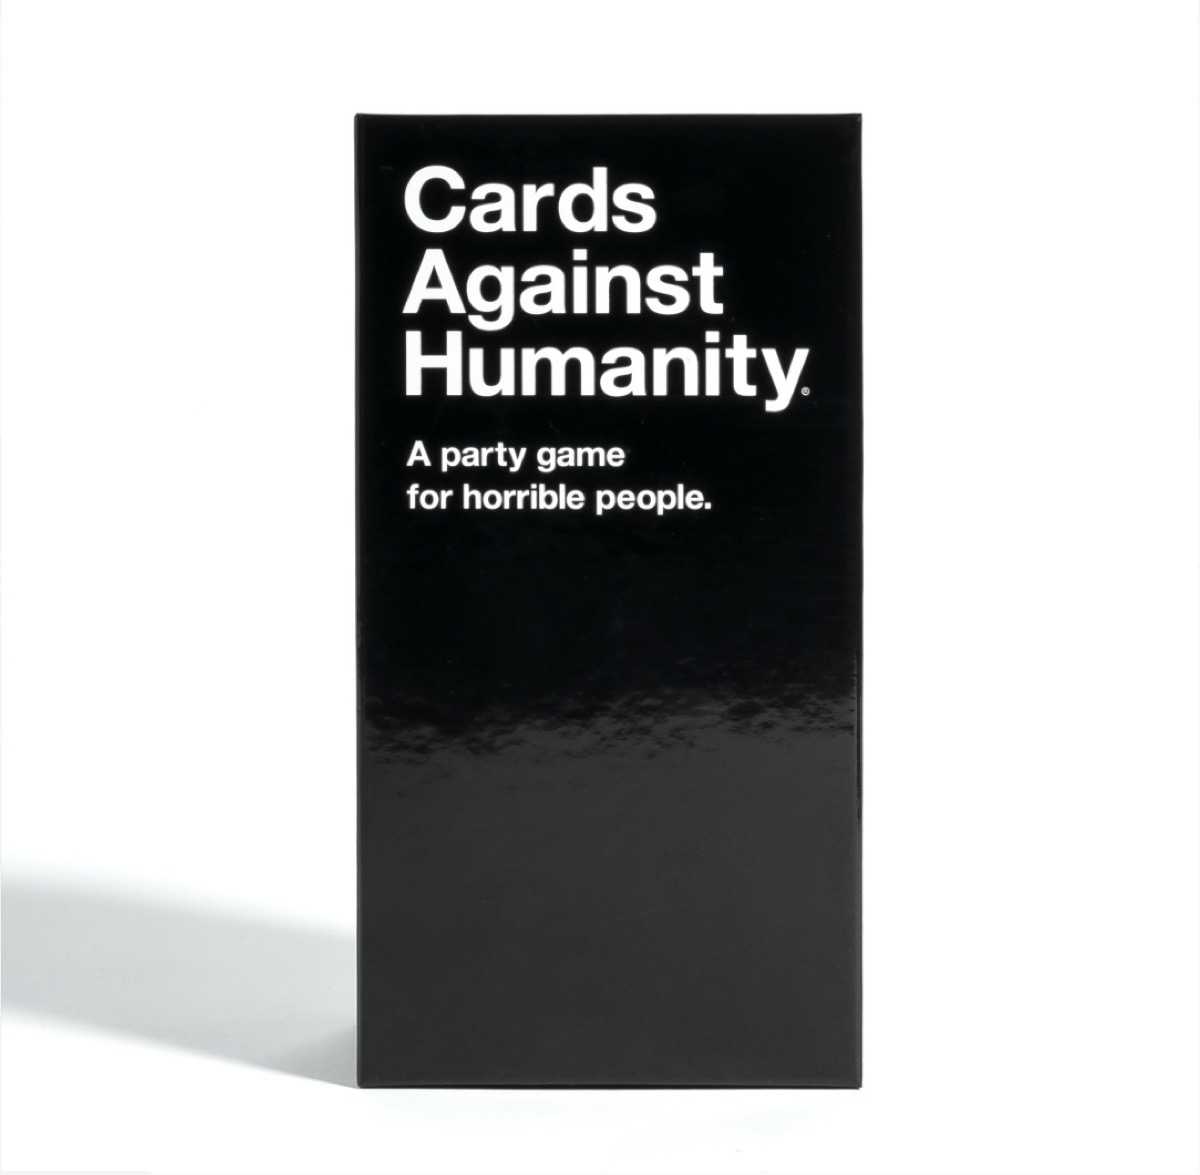 black box containing cards against humanity game